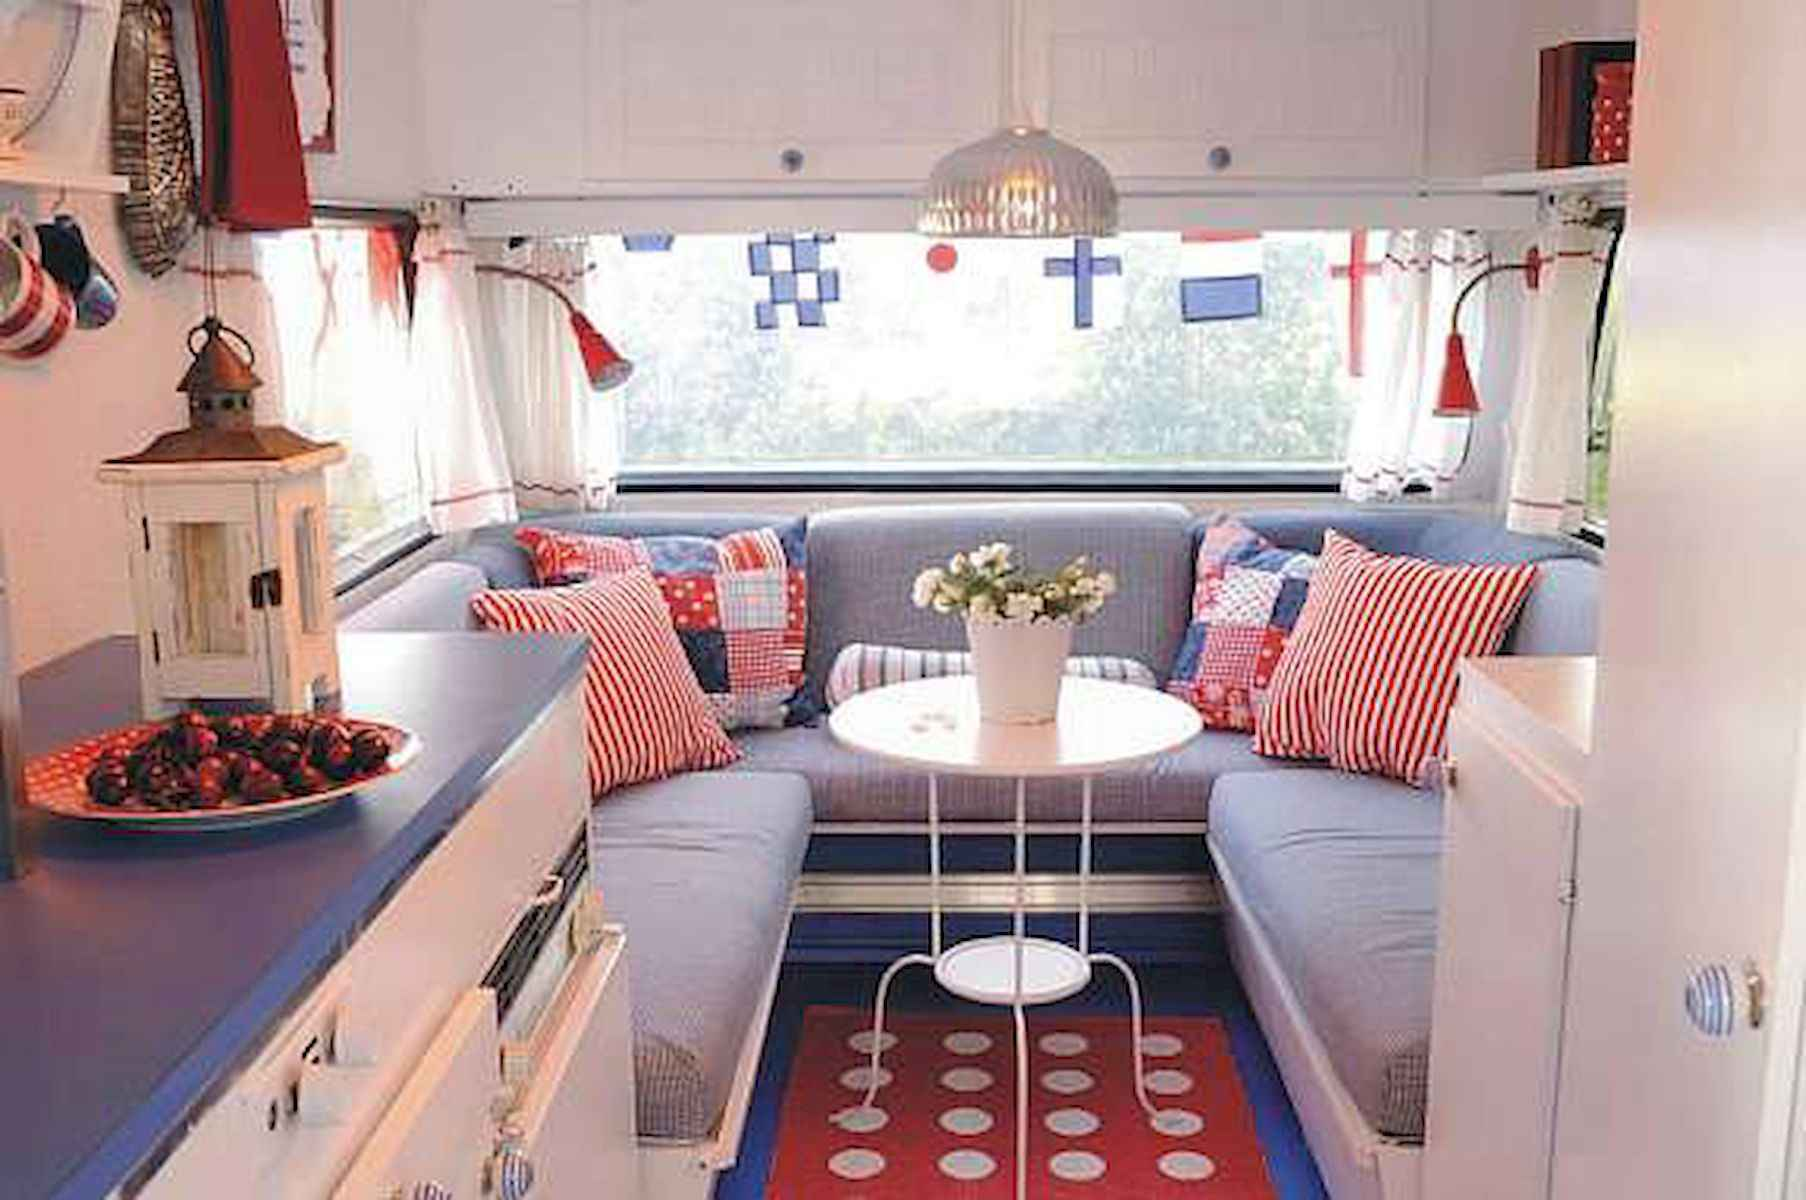 70 Stunning RV Living Camper Room Ideas Decorations Make Your Summer Awesome (27)